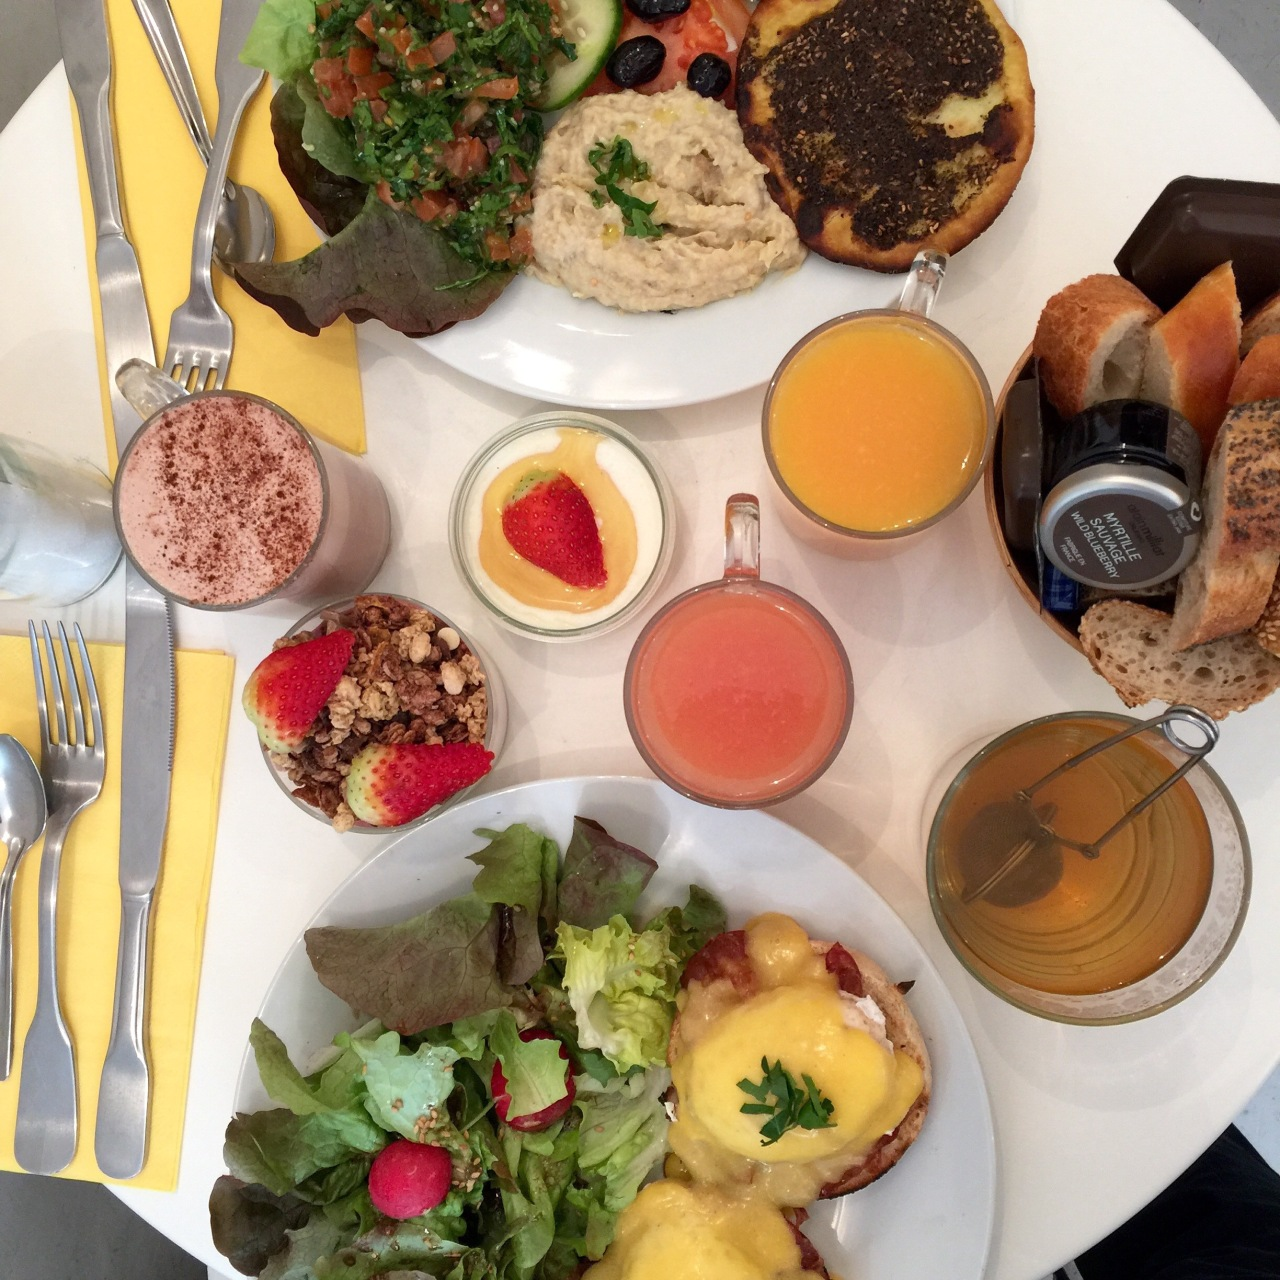 CAFÉ MADAM : LE BRUNCH FRANCO-LIBANAIS